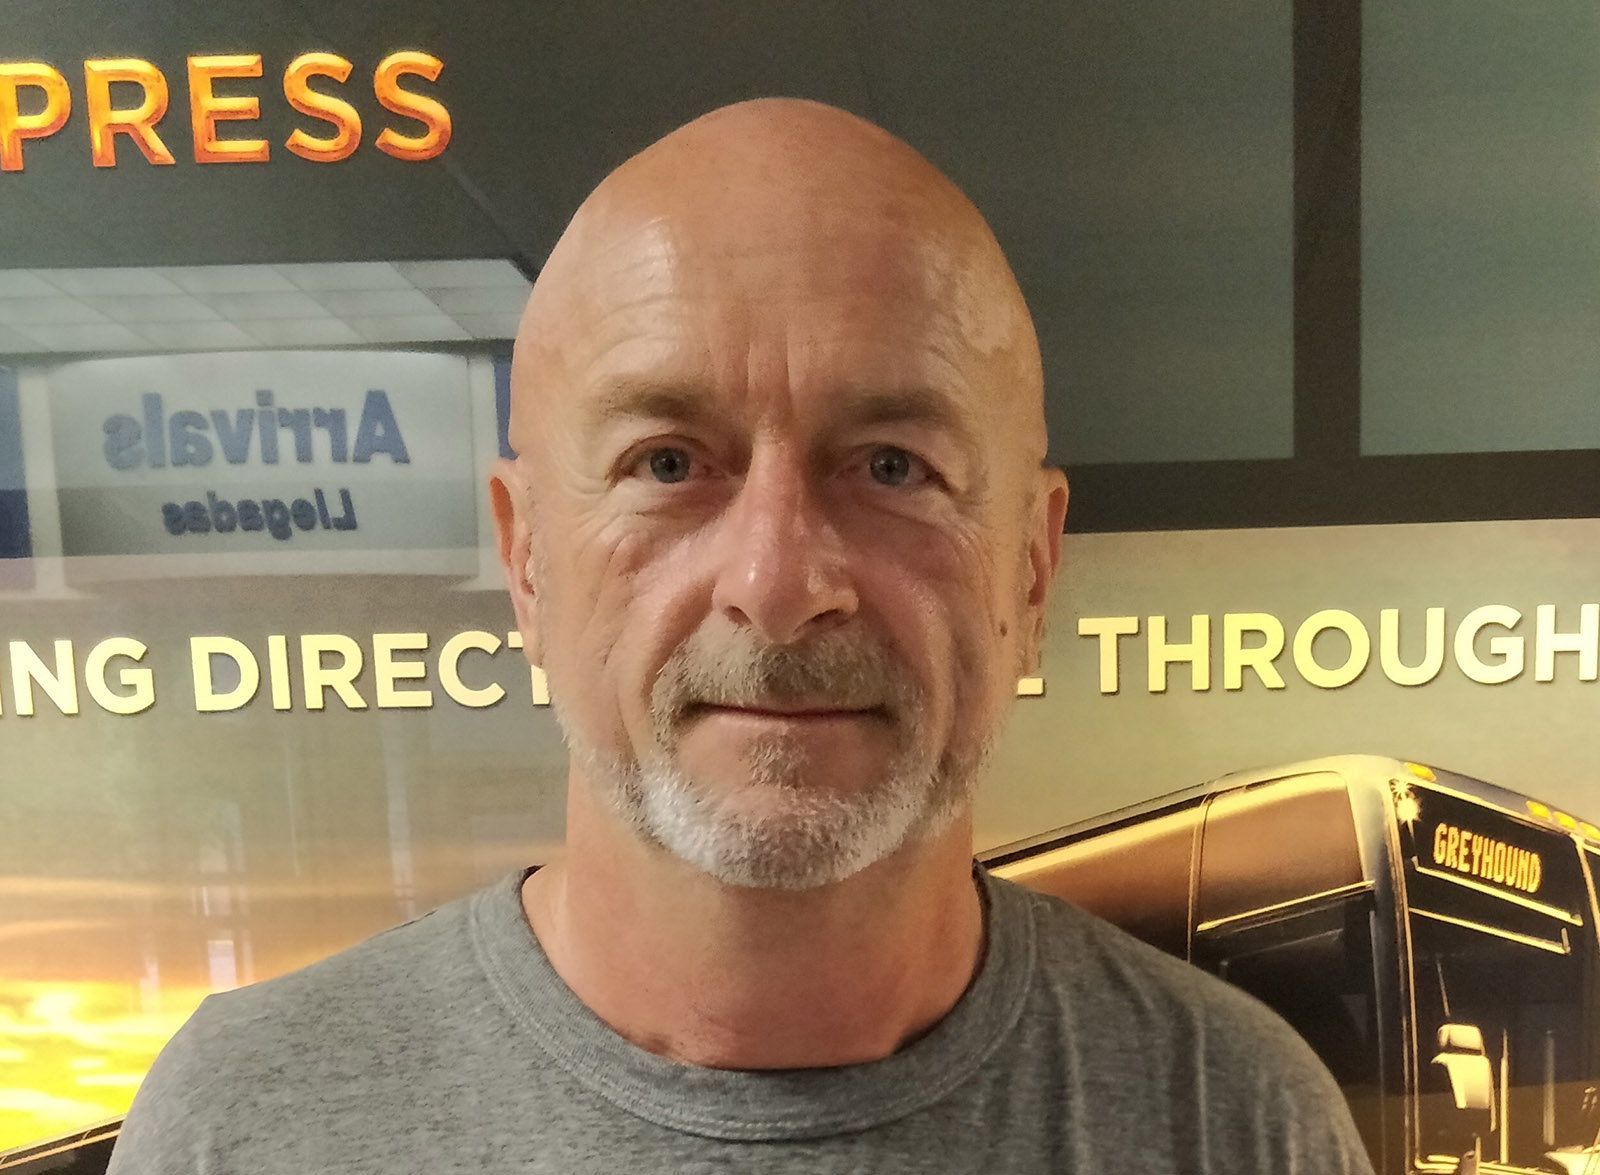 Daniel DePew, photographed by a friend soon after his release from prison, August 2018